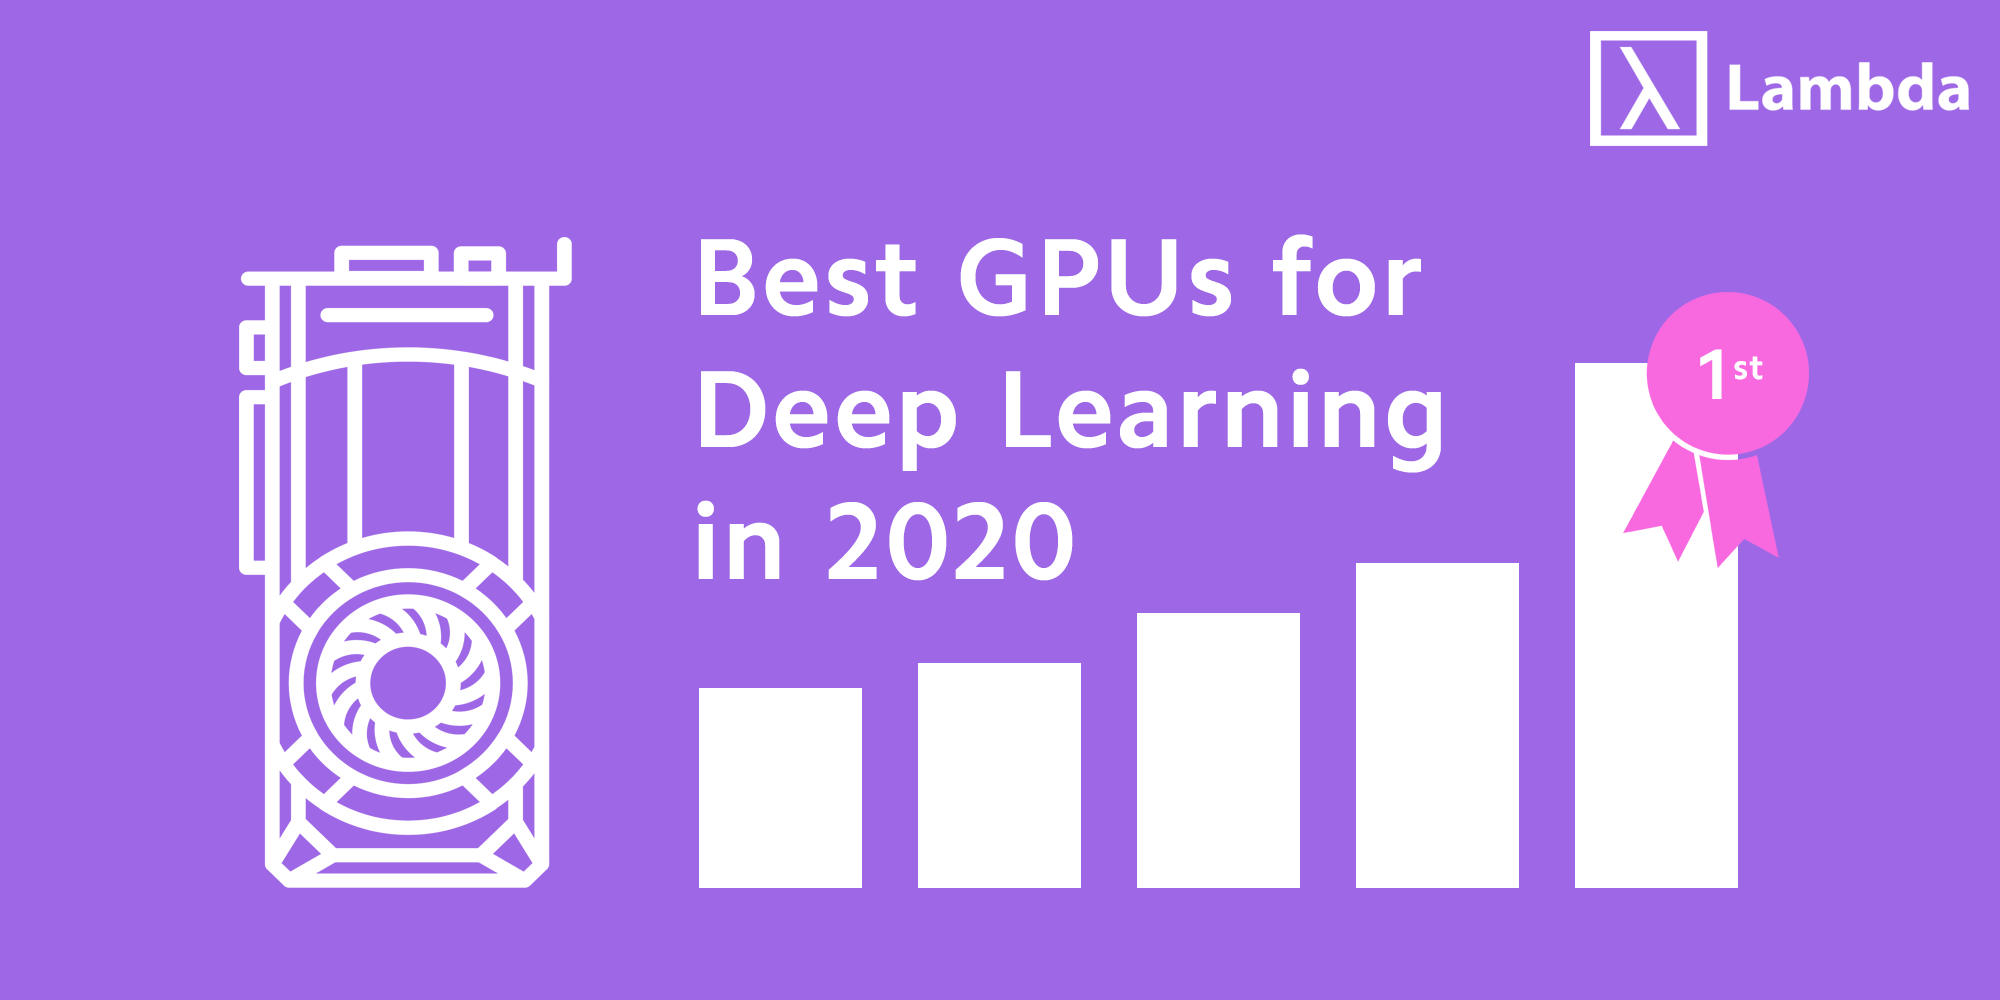 Header image with stylized graph of best GPUs for deep learning in 2020.